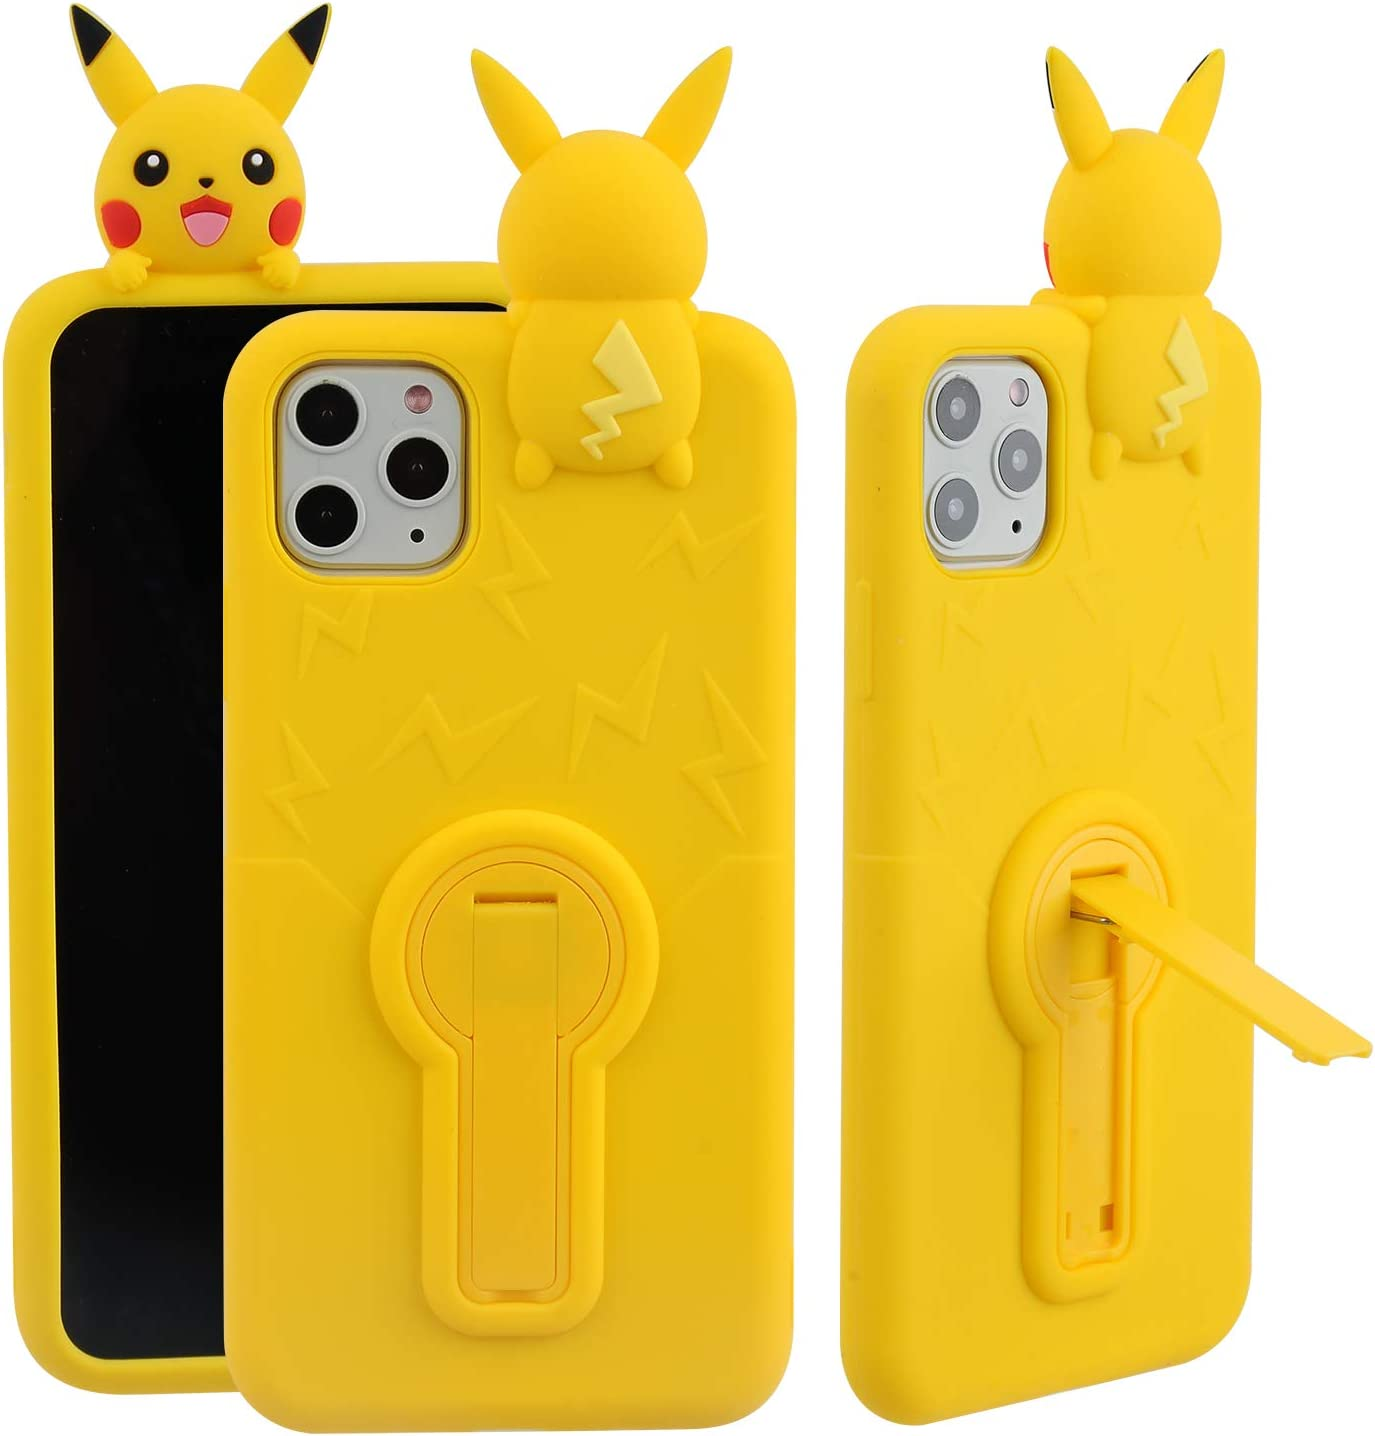 "Phenix Color Pikachu Case for iPhone 11 Pro Max 6.5"", Kickstand 3D Cute Cartoon Soft Silicone Rubber Protective Cover,Kawaii Animated for Kids Child Teens Girls (Pikachu, iPhone 11 Pro Max 6.5"")"